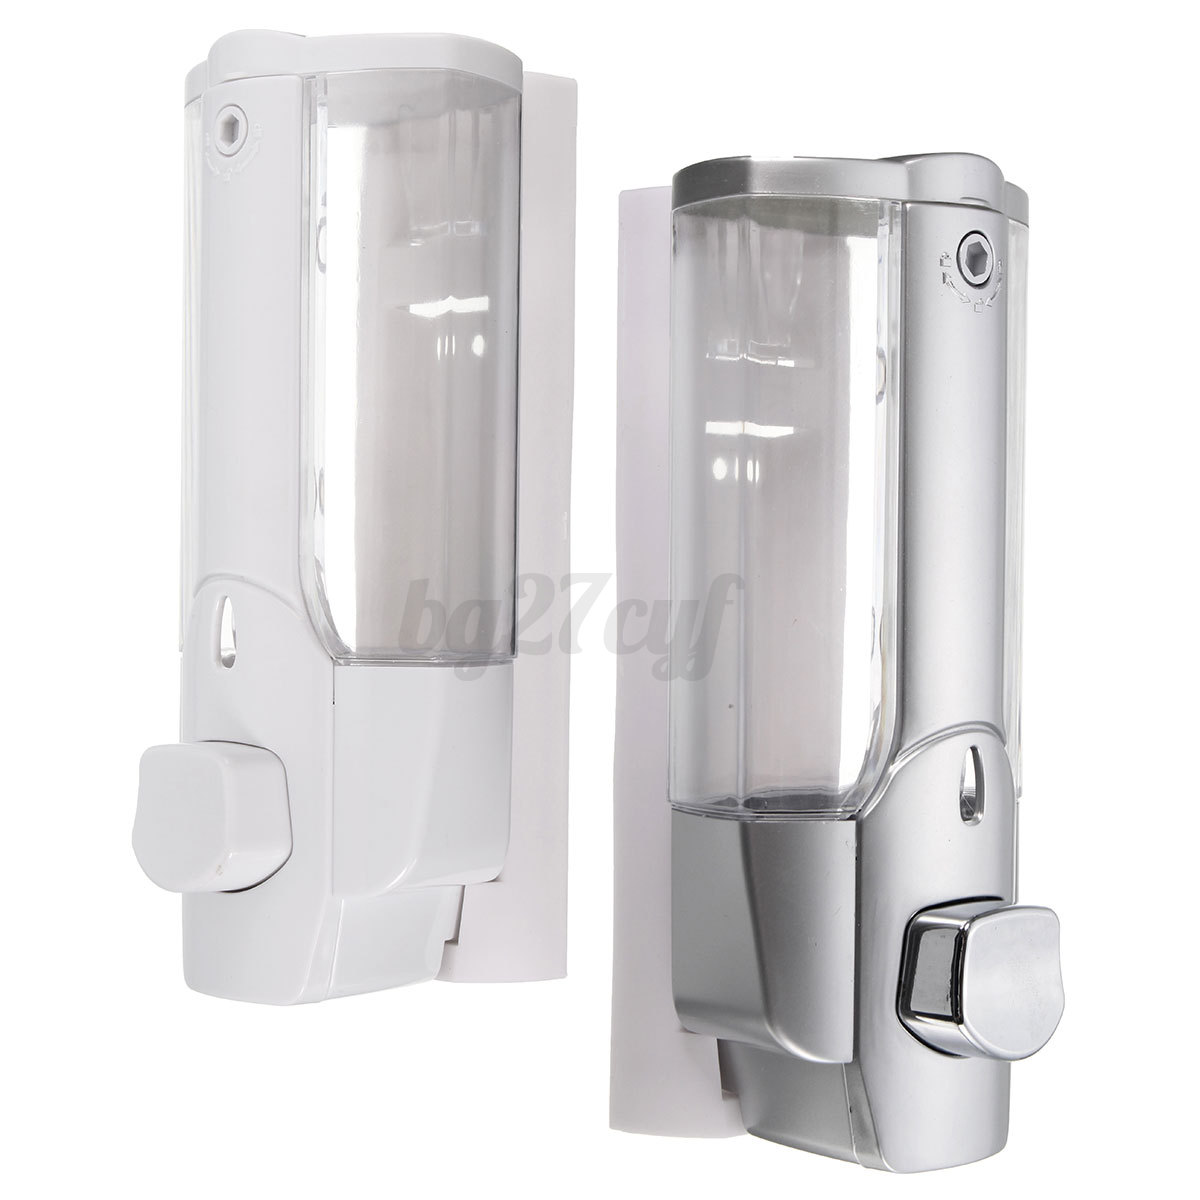 Wall Mounted Kitchen Soap Dispenser Wall Mounted Shampoo Soap Dispenser Sanitizer Bathroom